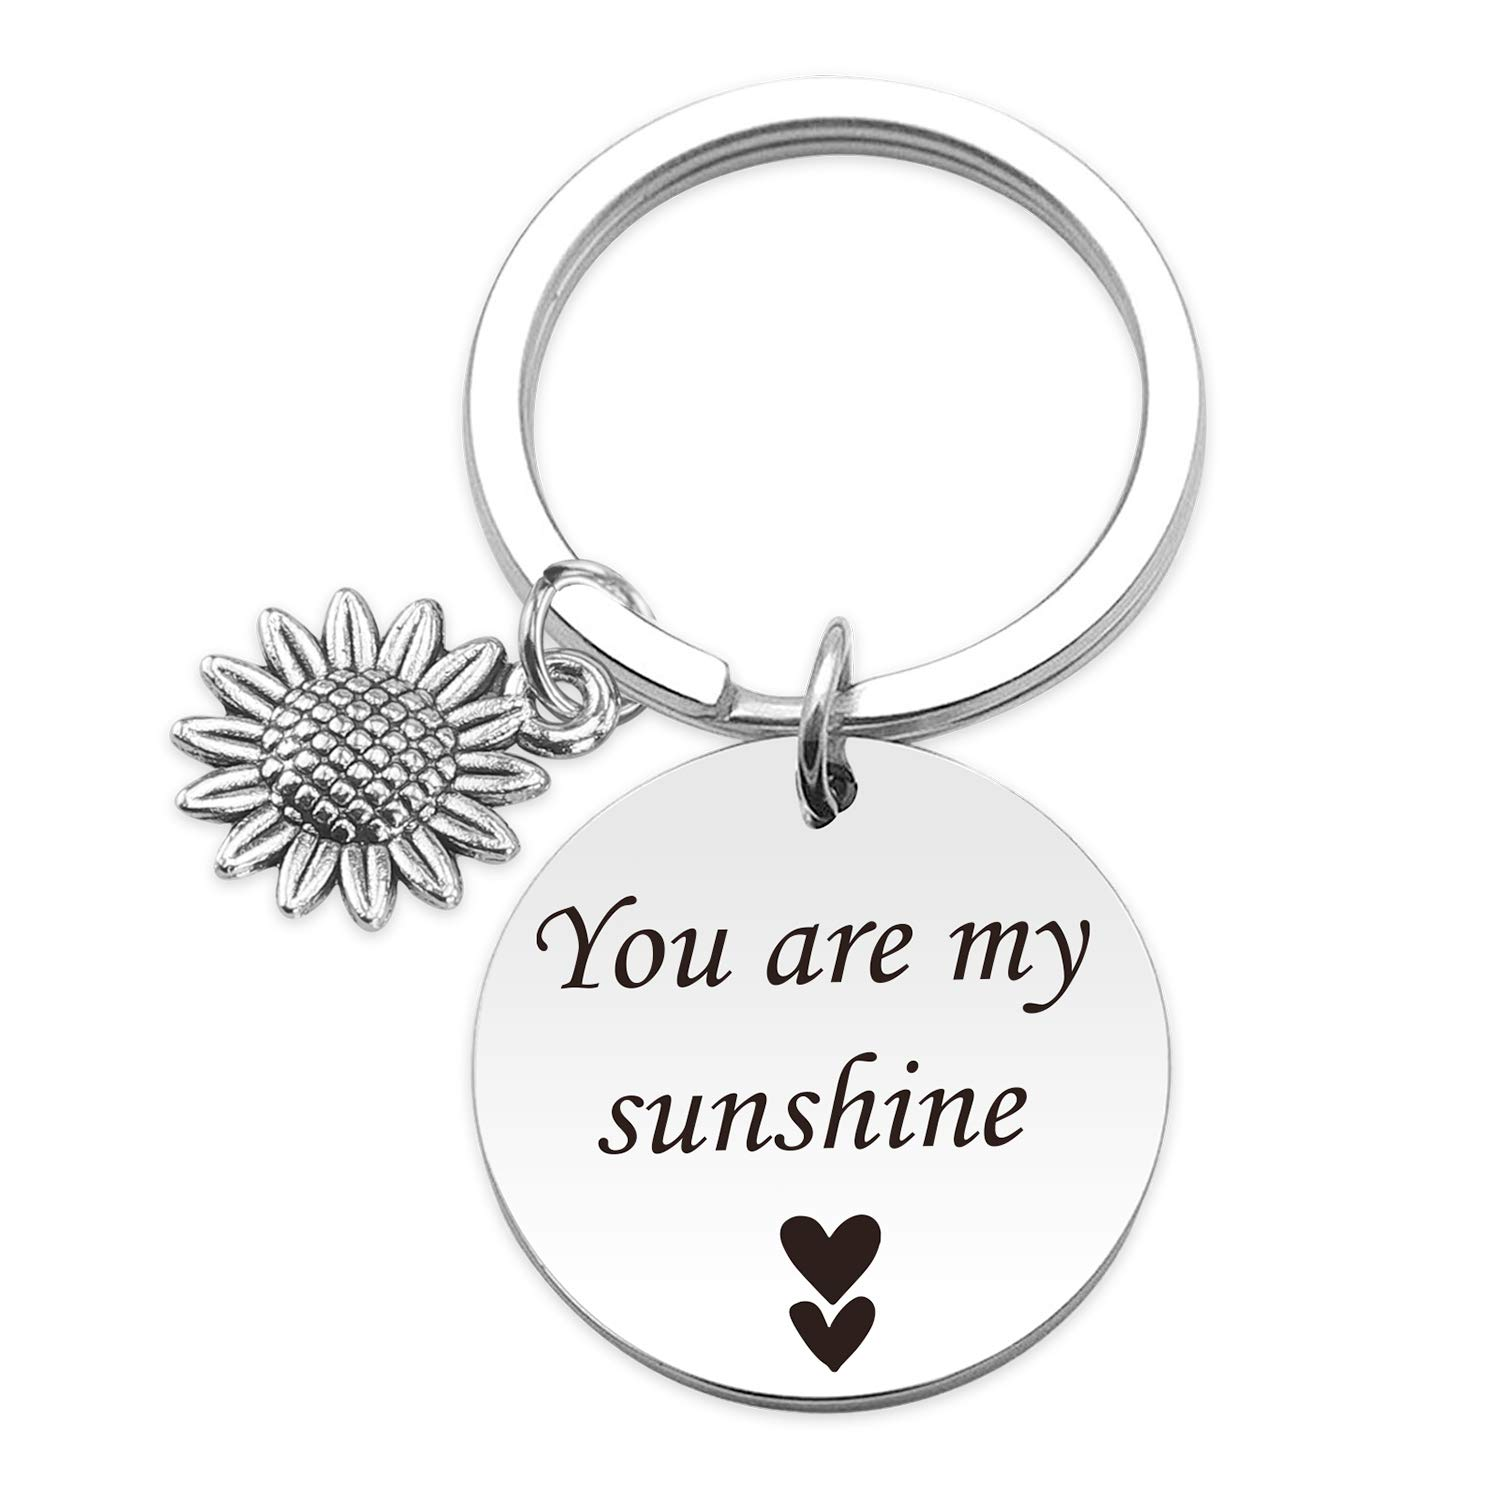 HN HNHB Sunshine Keychain Lover Inspirational You are My Sunshine Key Ring with Sunflower Charm Family Couple Friendship Gift